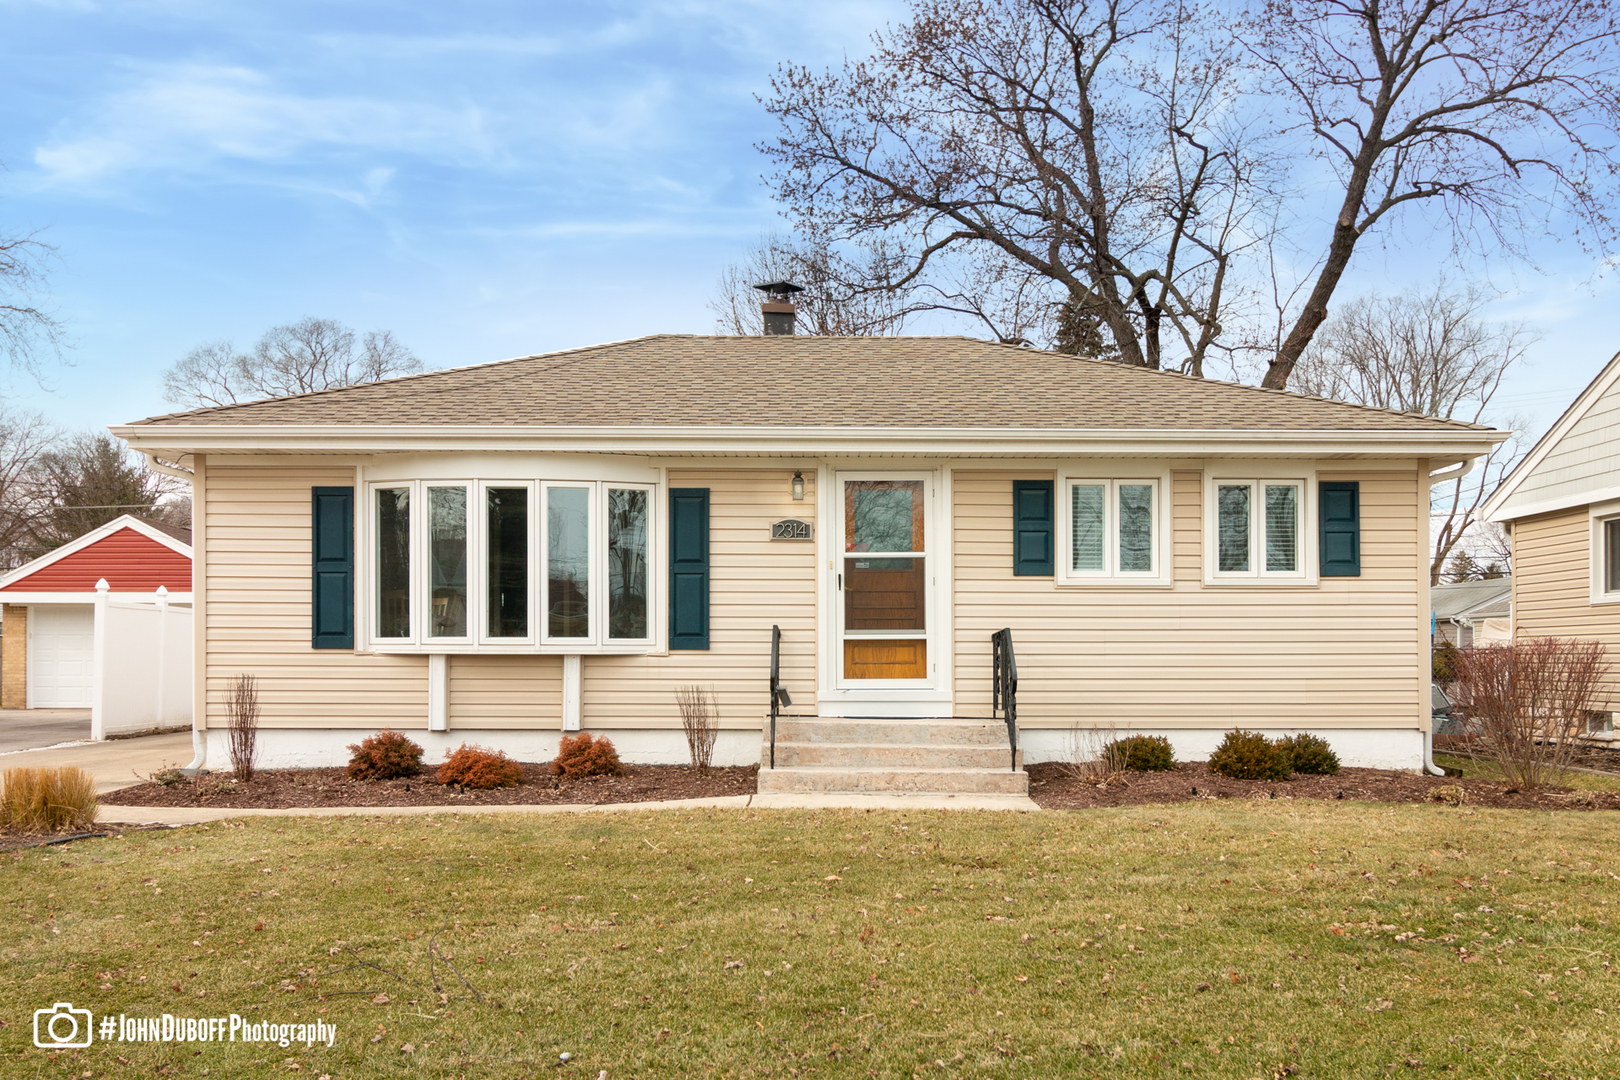 2314 South SCOTT Street, Des Plaines in Cook County, IL 60018 Home for Sale